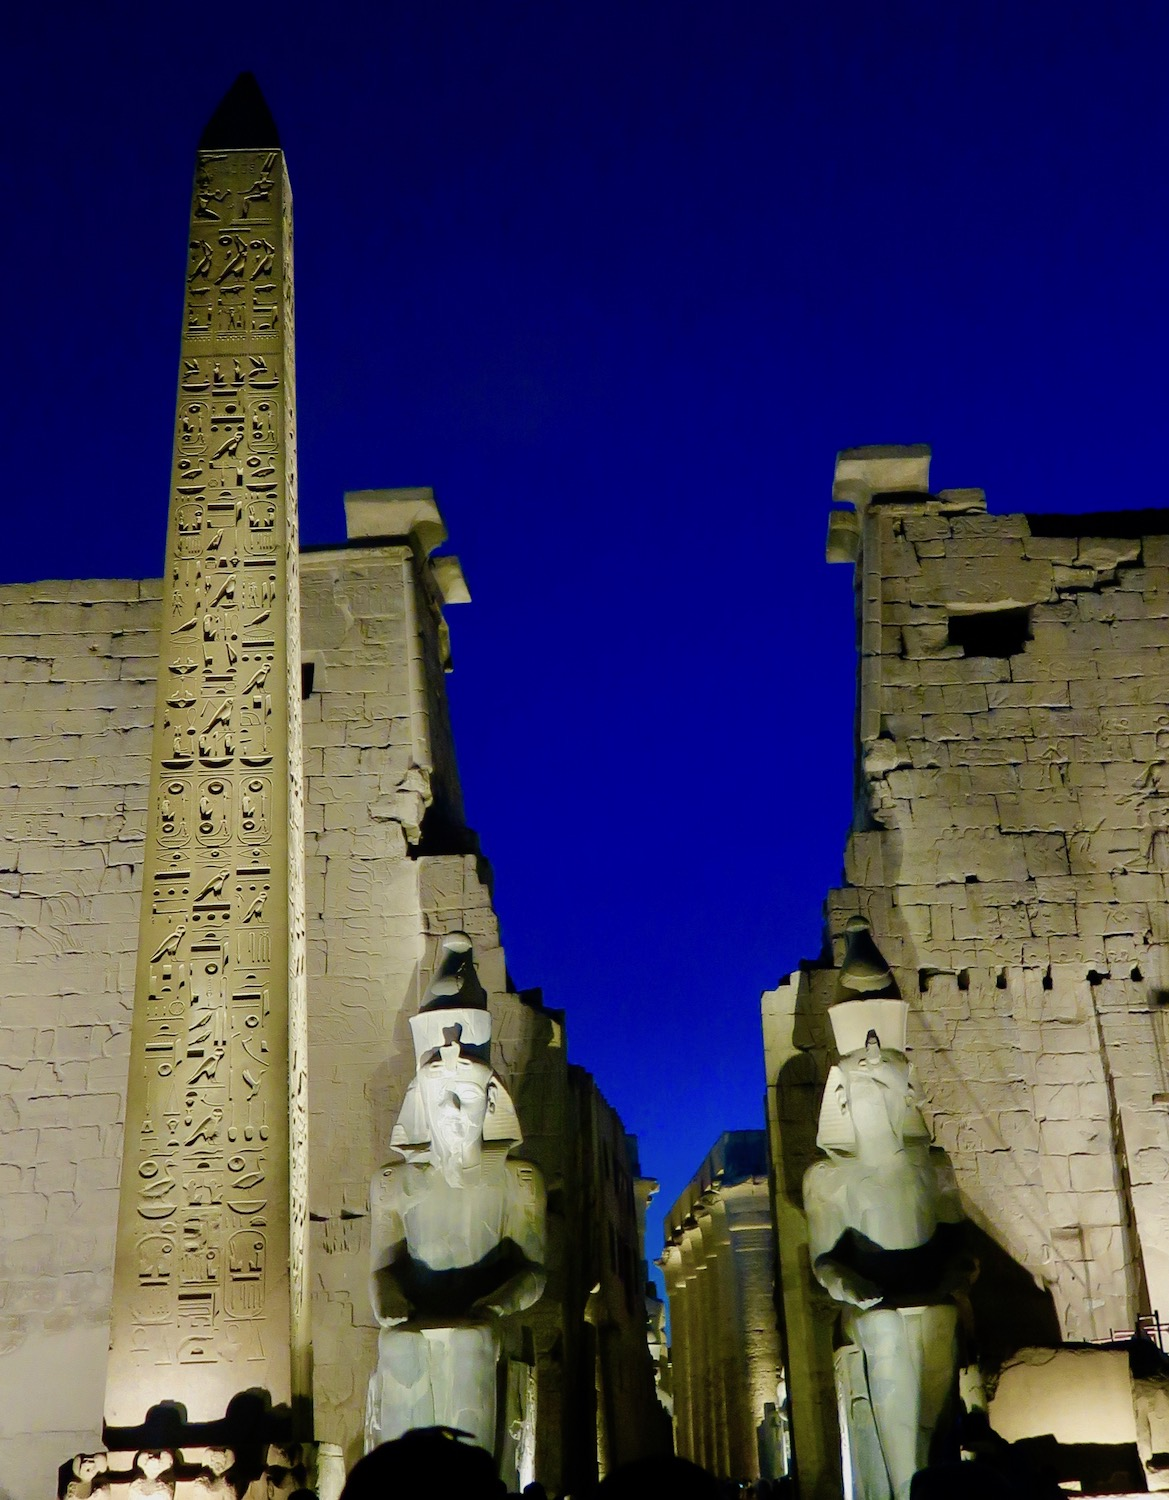 Entrance to Temple of Luxor